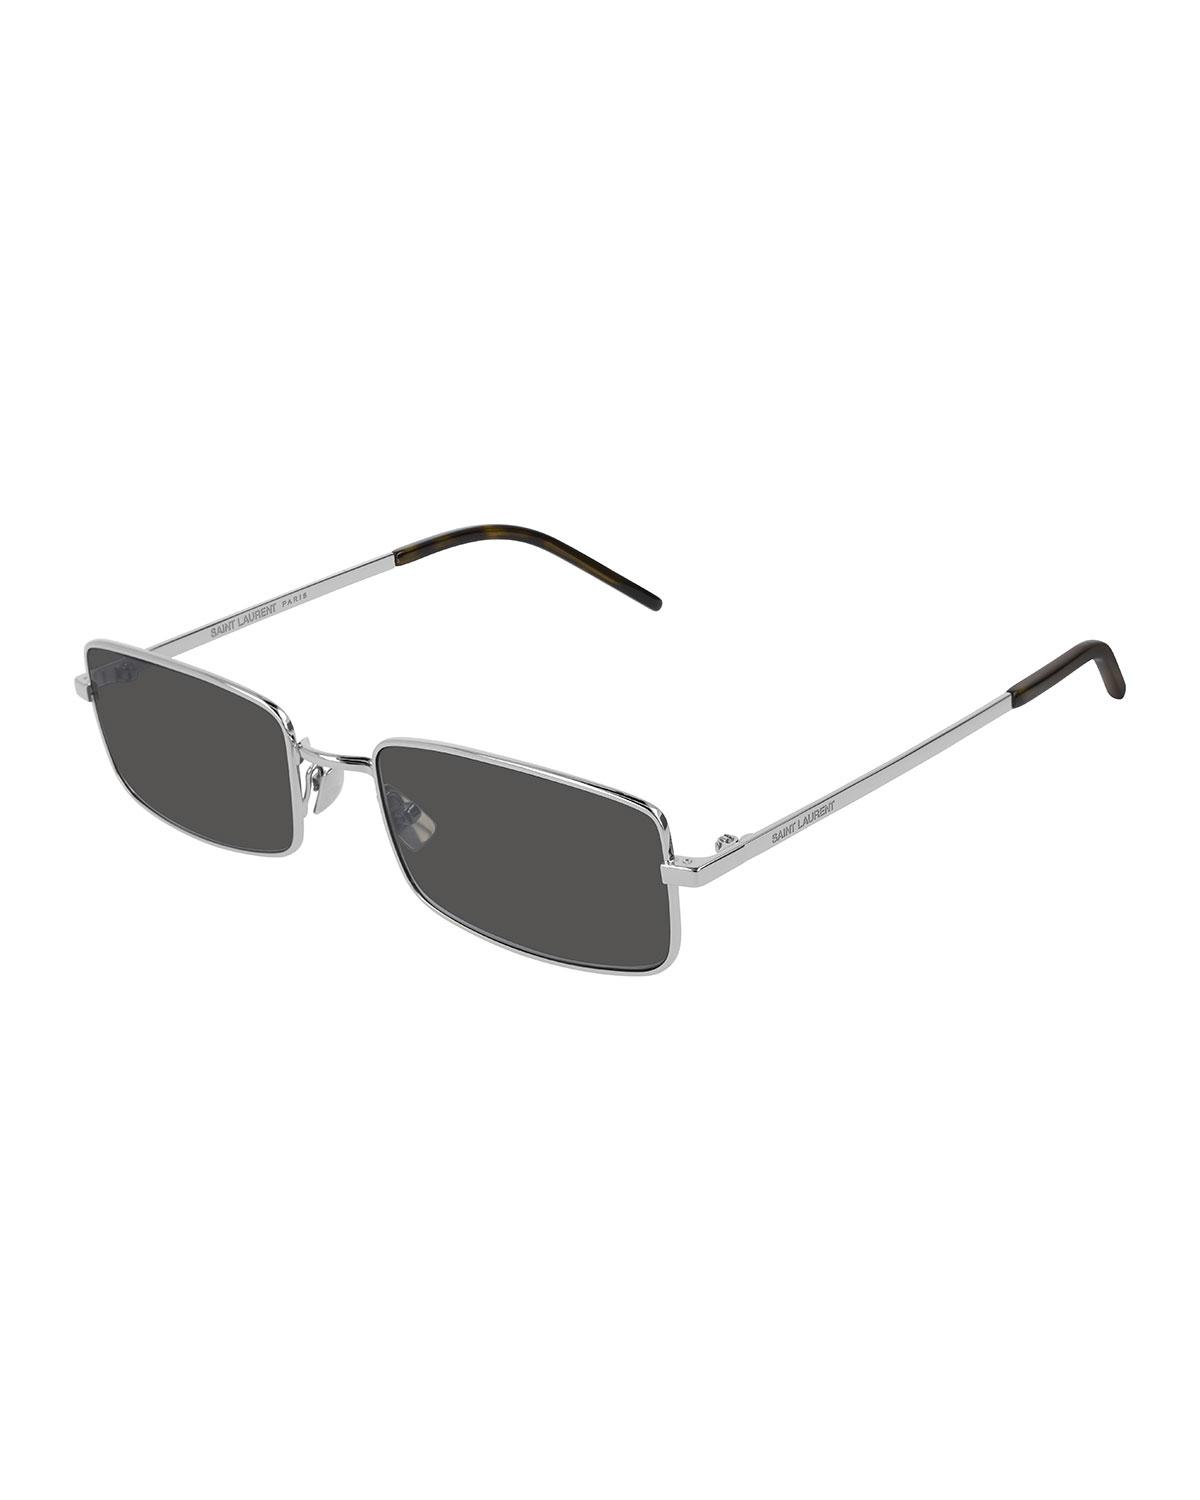 849e816cf1 Lyst - Saint Laurent Men s Slim Metal Rectangle Sunglasses in ...